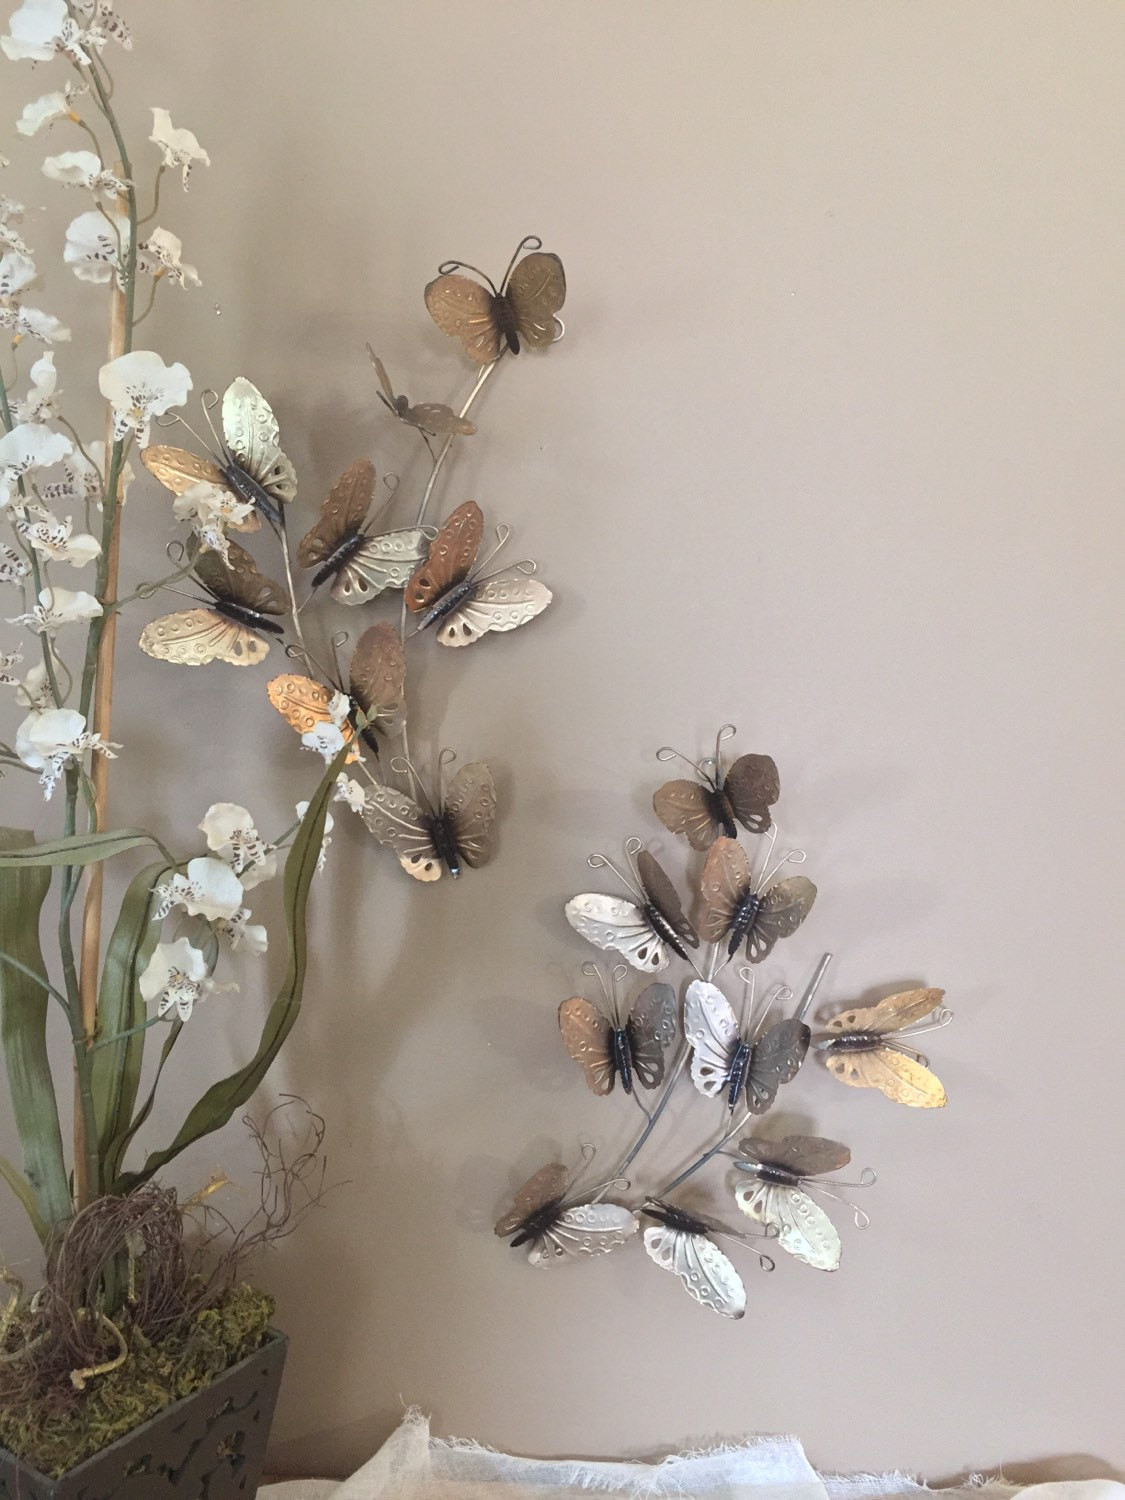 Best ideas about Wall Art Decor . Save or Pin Vintage Wall Decor Gold Butterfly Decor Wall Art Vintage Now.